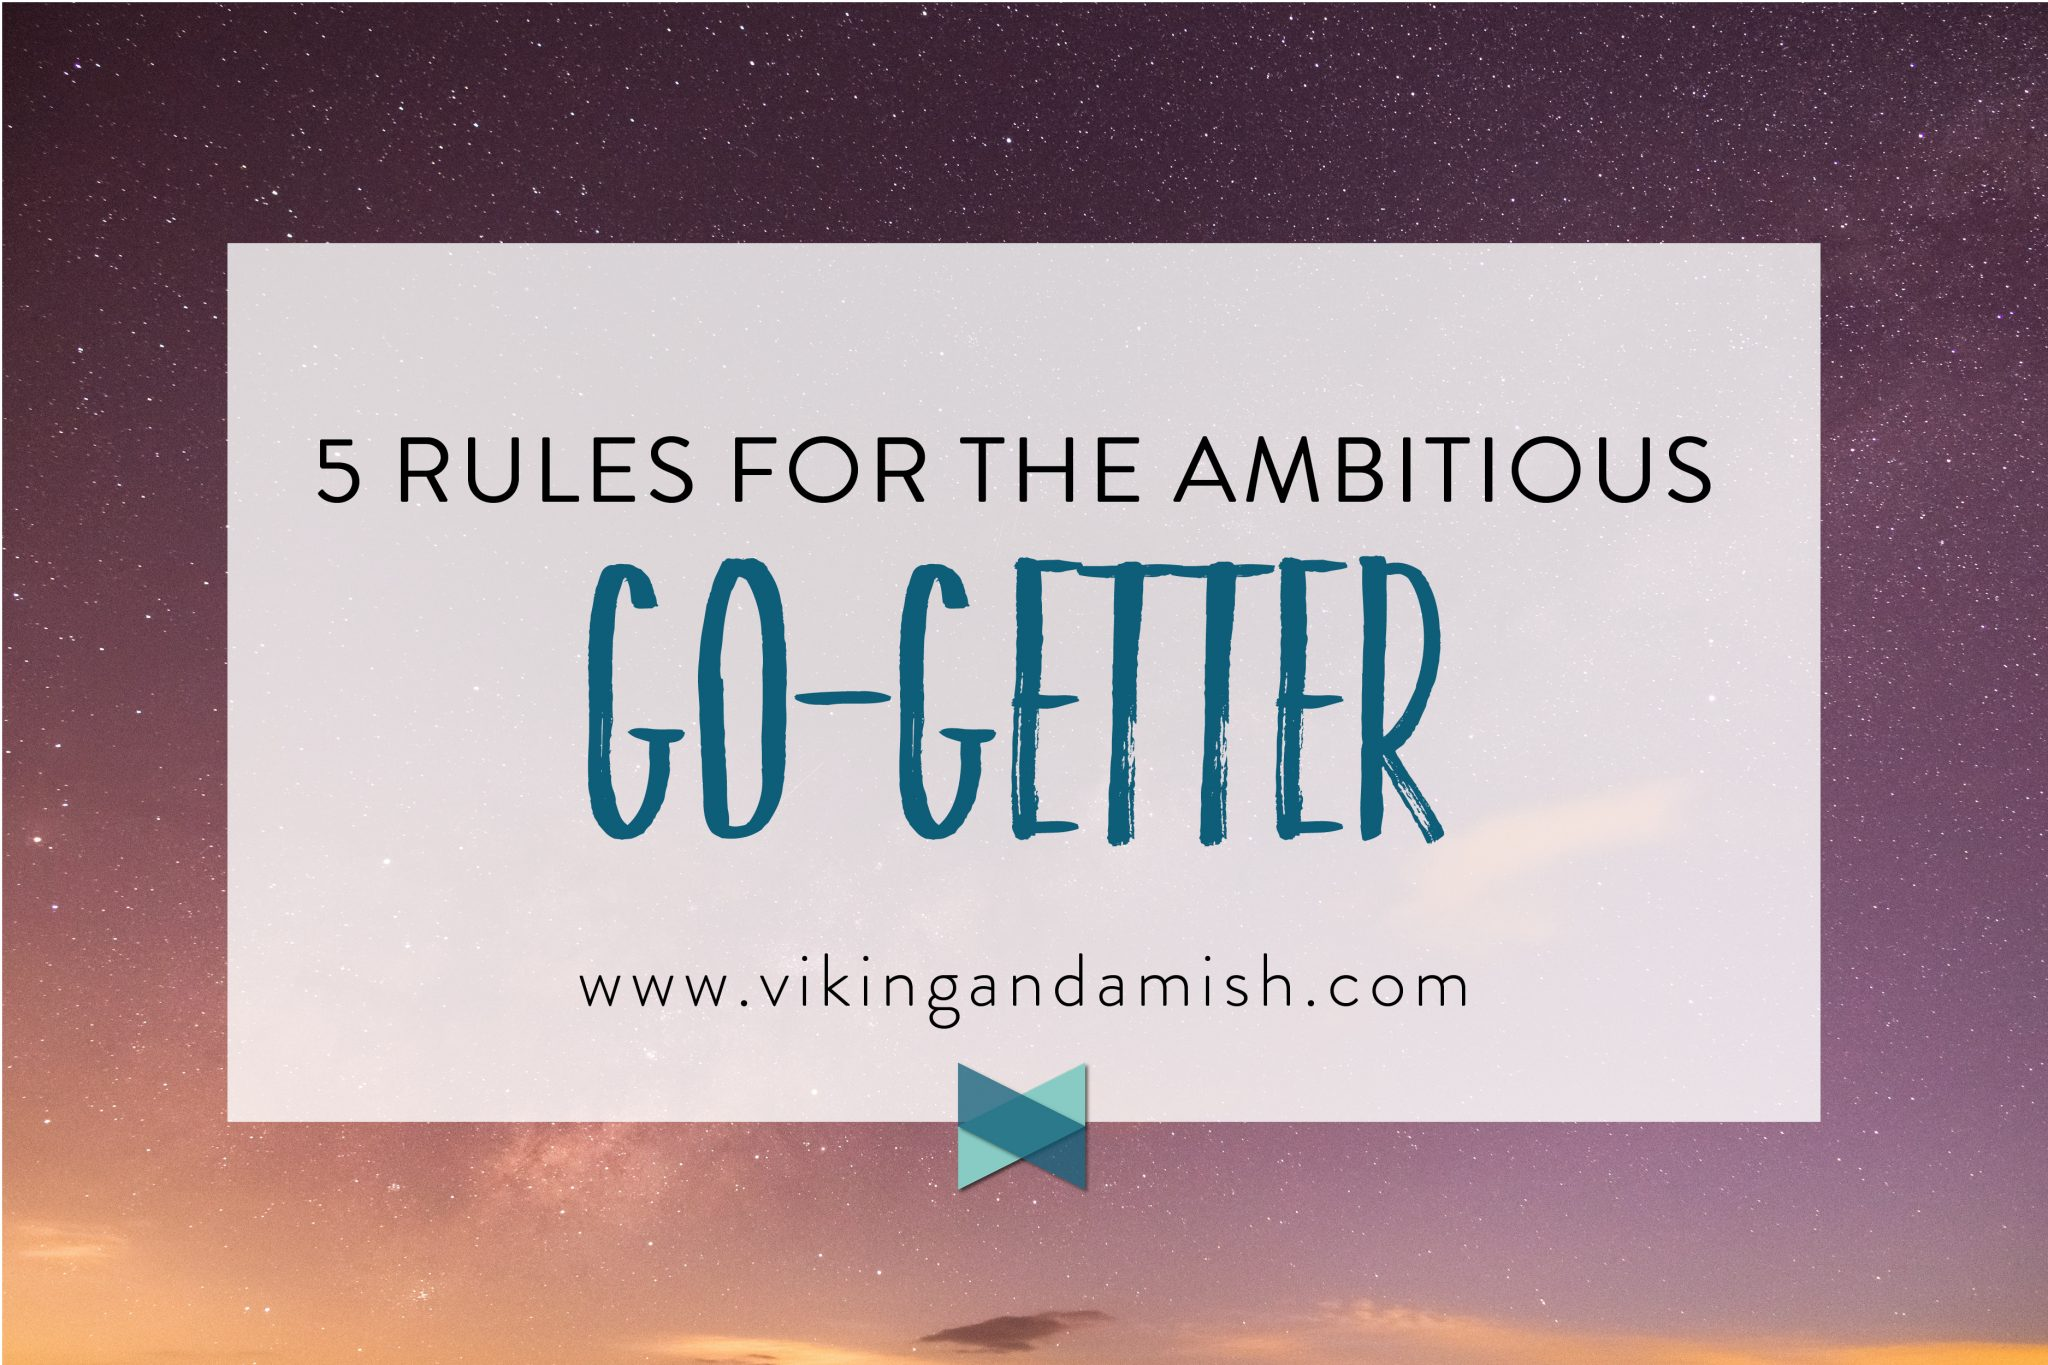 If you are ambitious and have the aspiration to reach your dreams, but need a reminder of the rules that you should play by as a go-getter, here are my 5 rules for the ambitious go-getter | www.vikingandamish.com